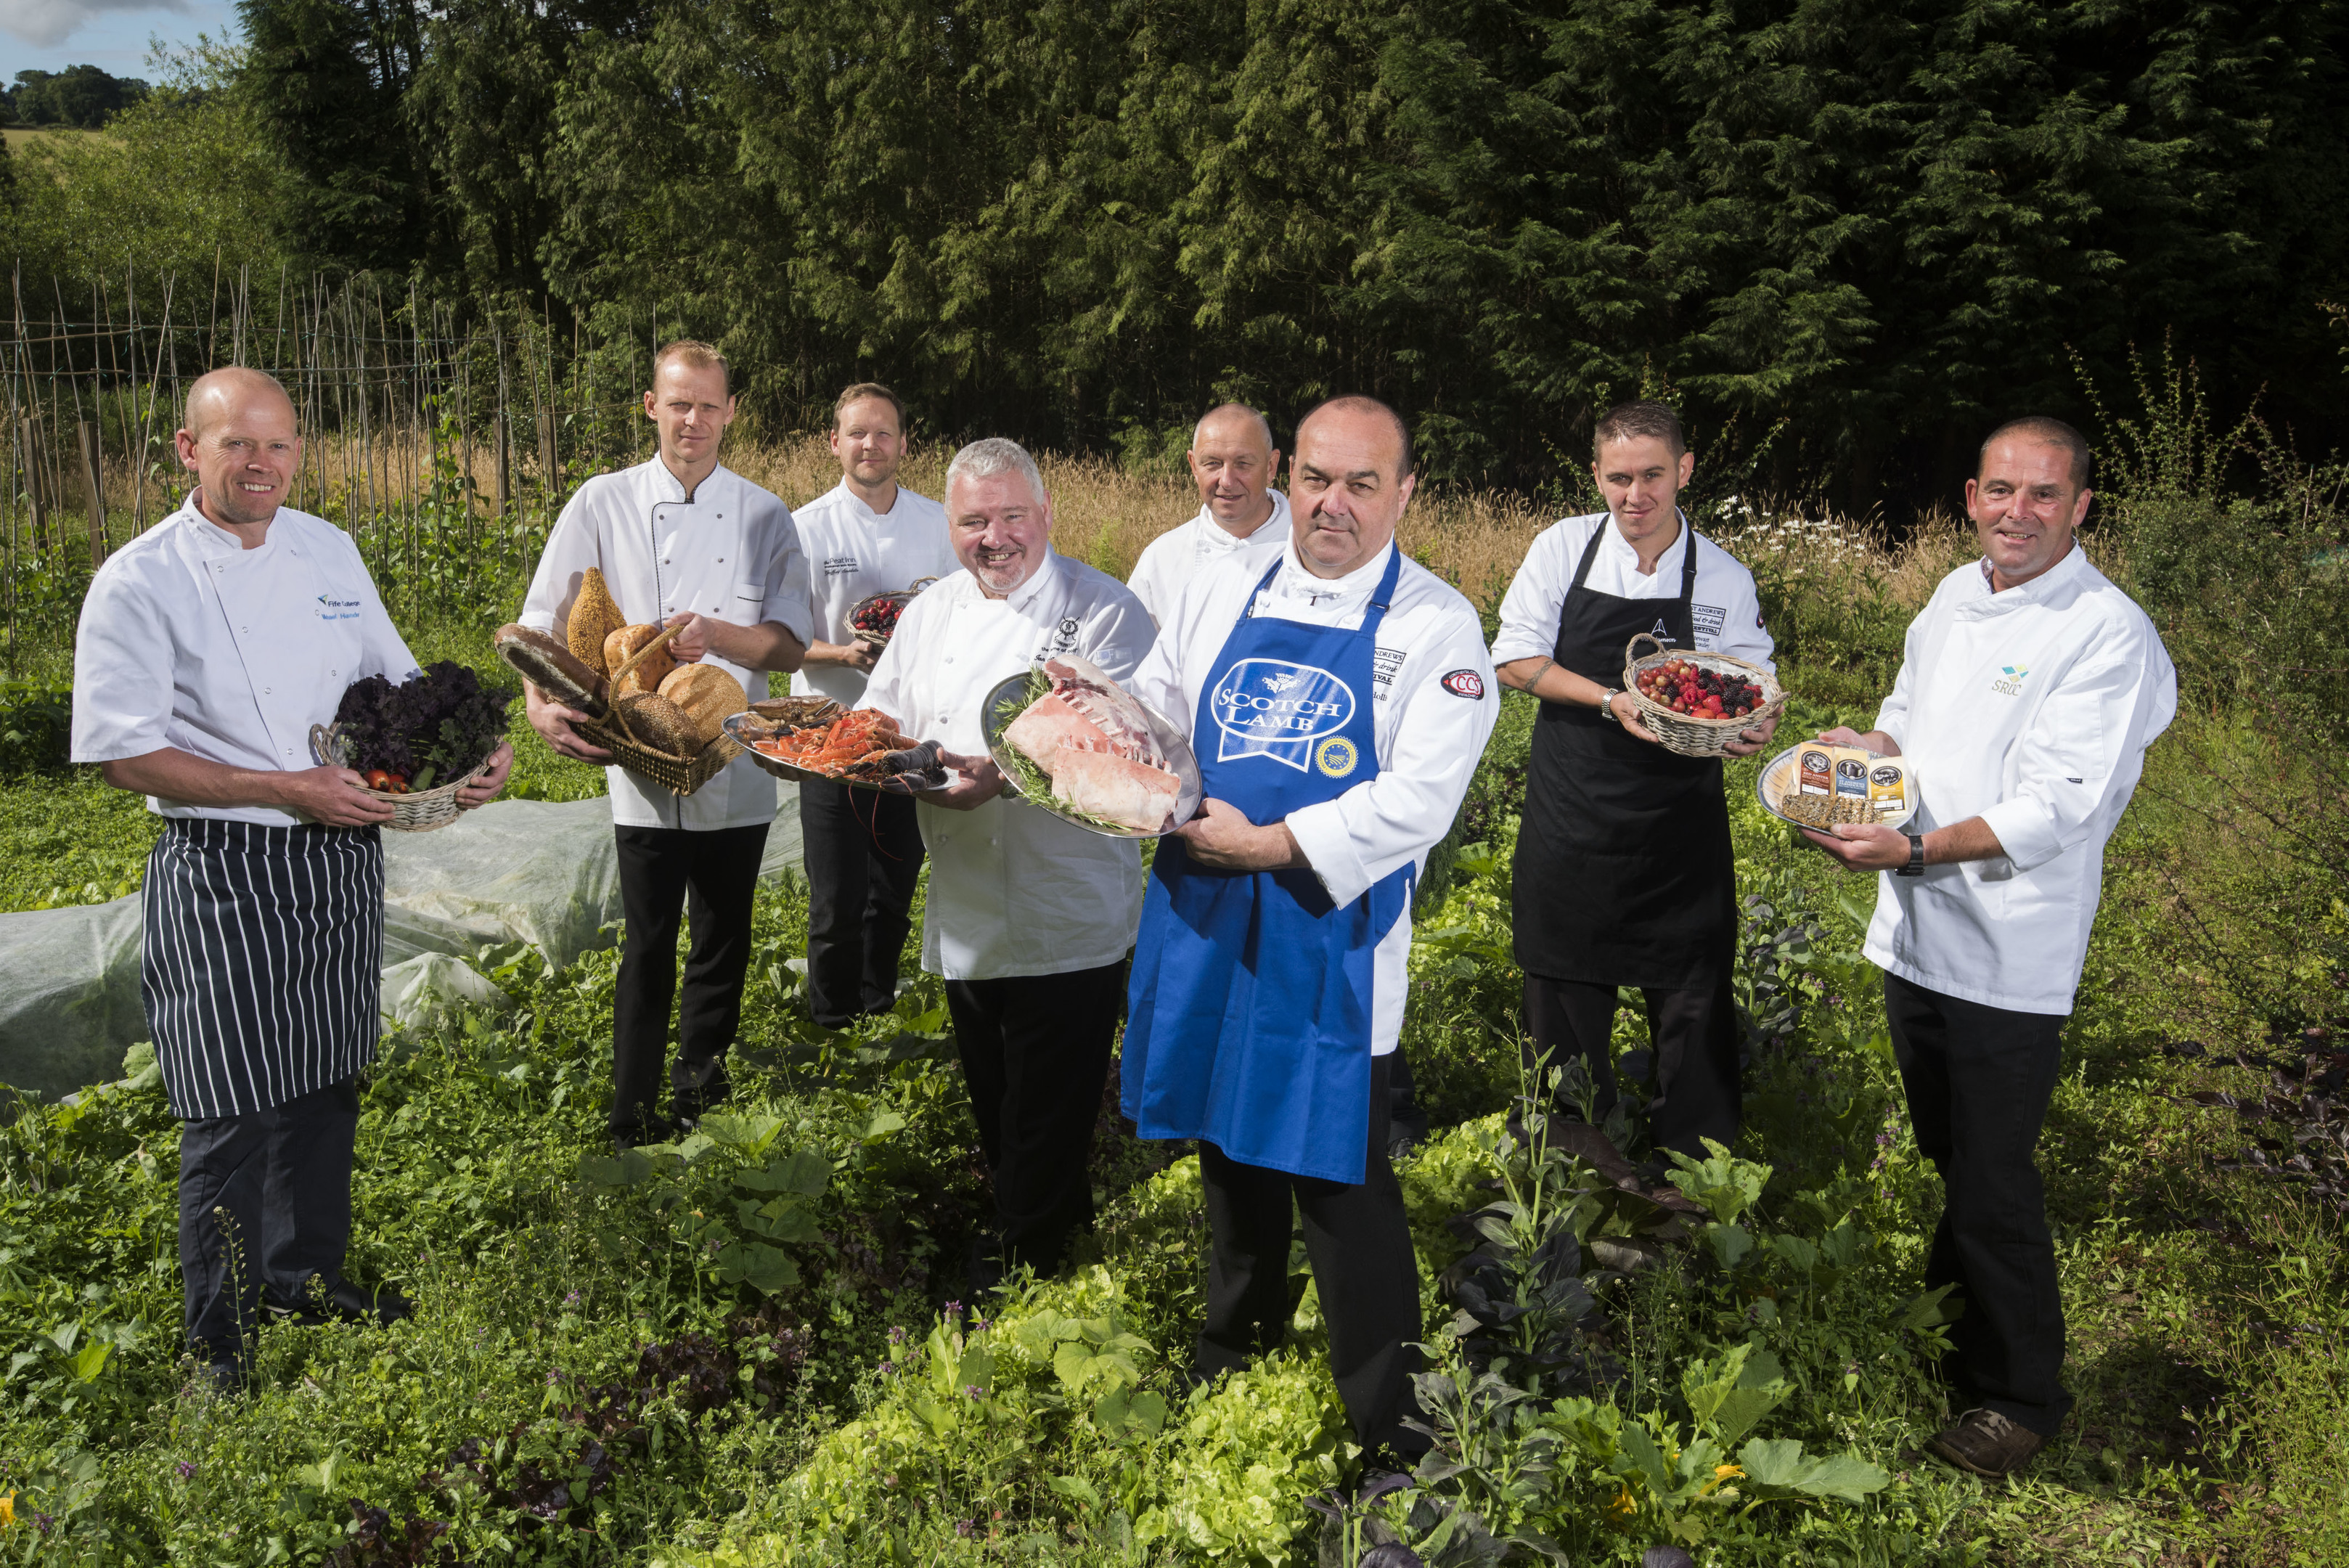 Six Scottish chefs have worked together to create the meal